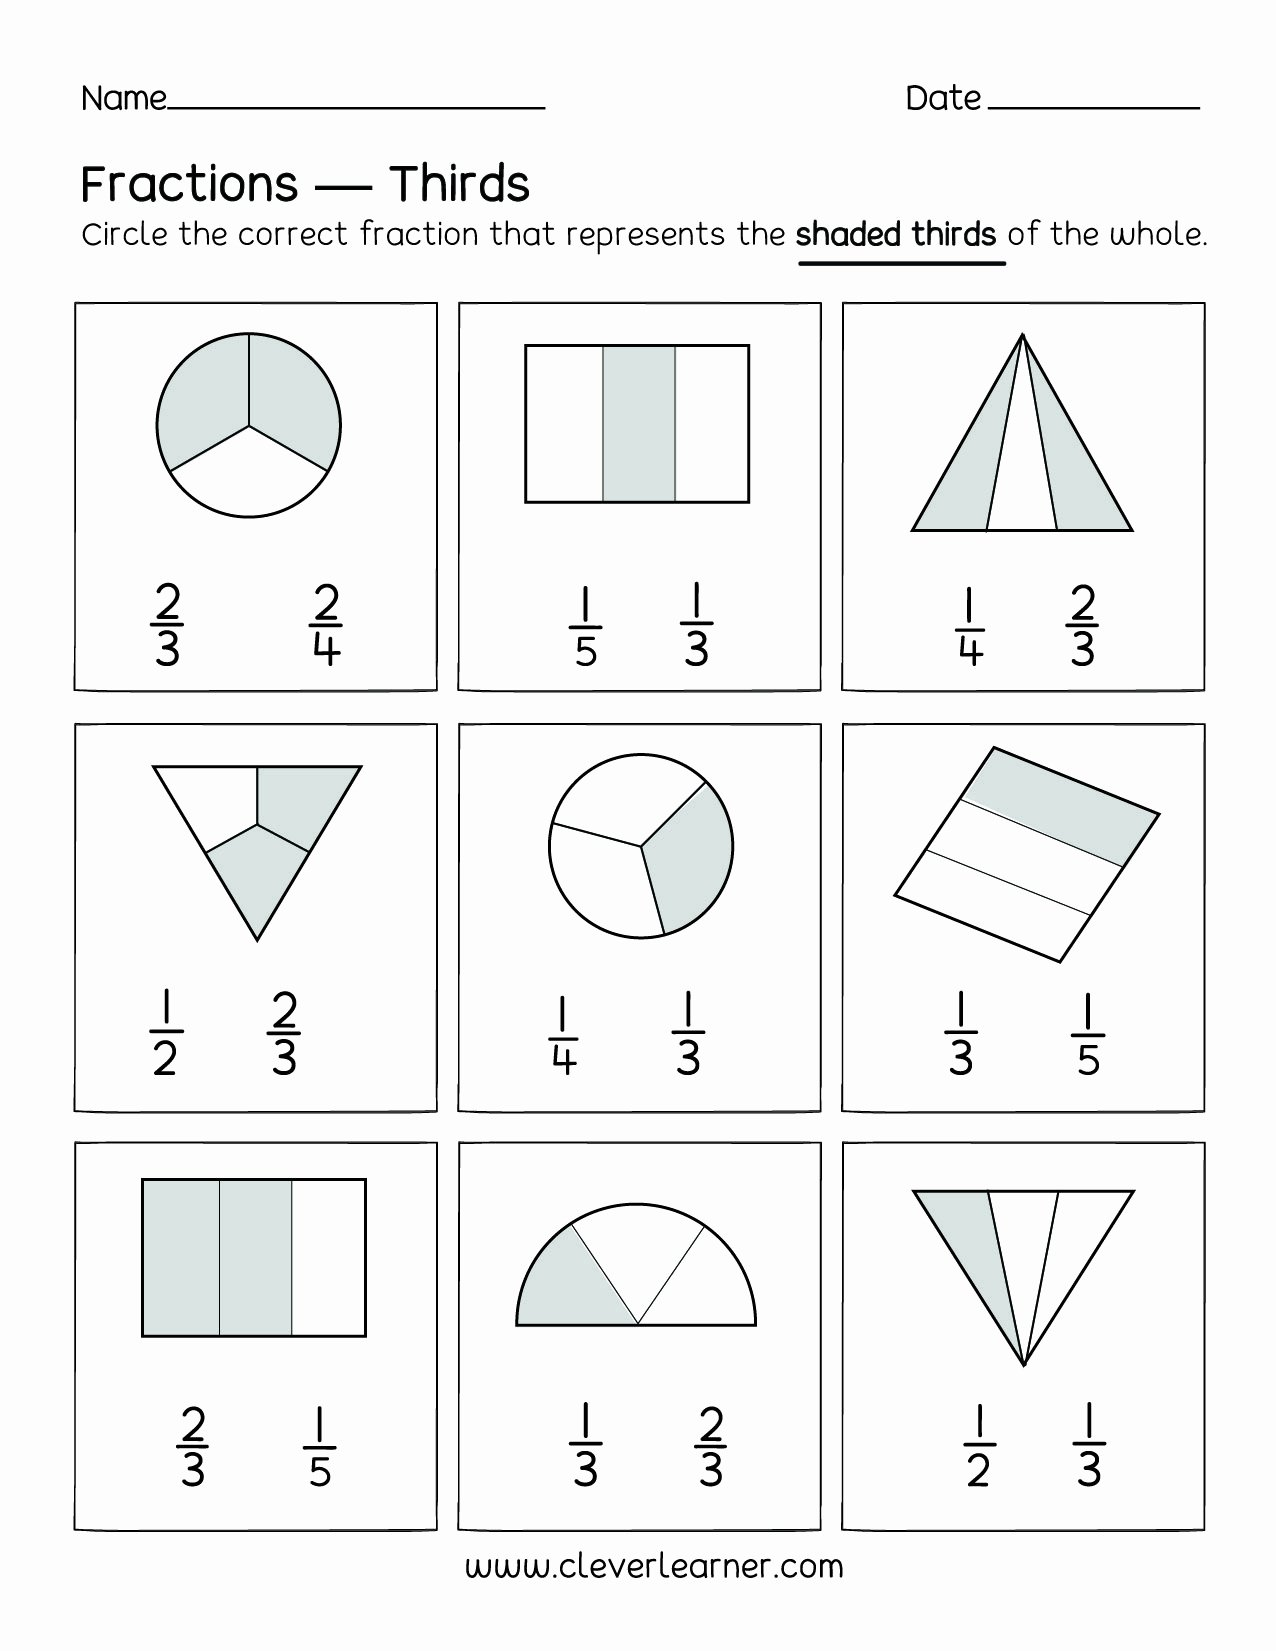 Fraction Worksheets for Preschoolers Best Of Fun Activity Fractions Thirds Worksheets for Children